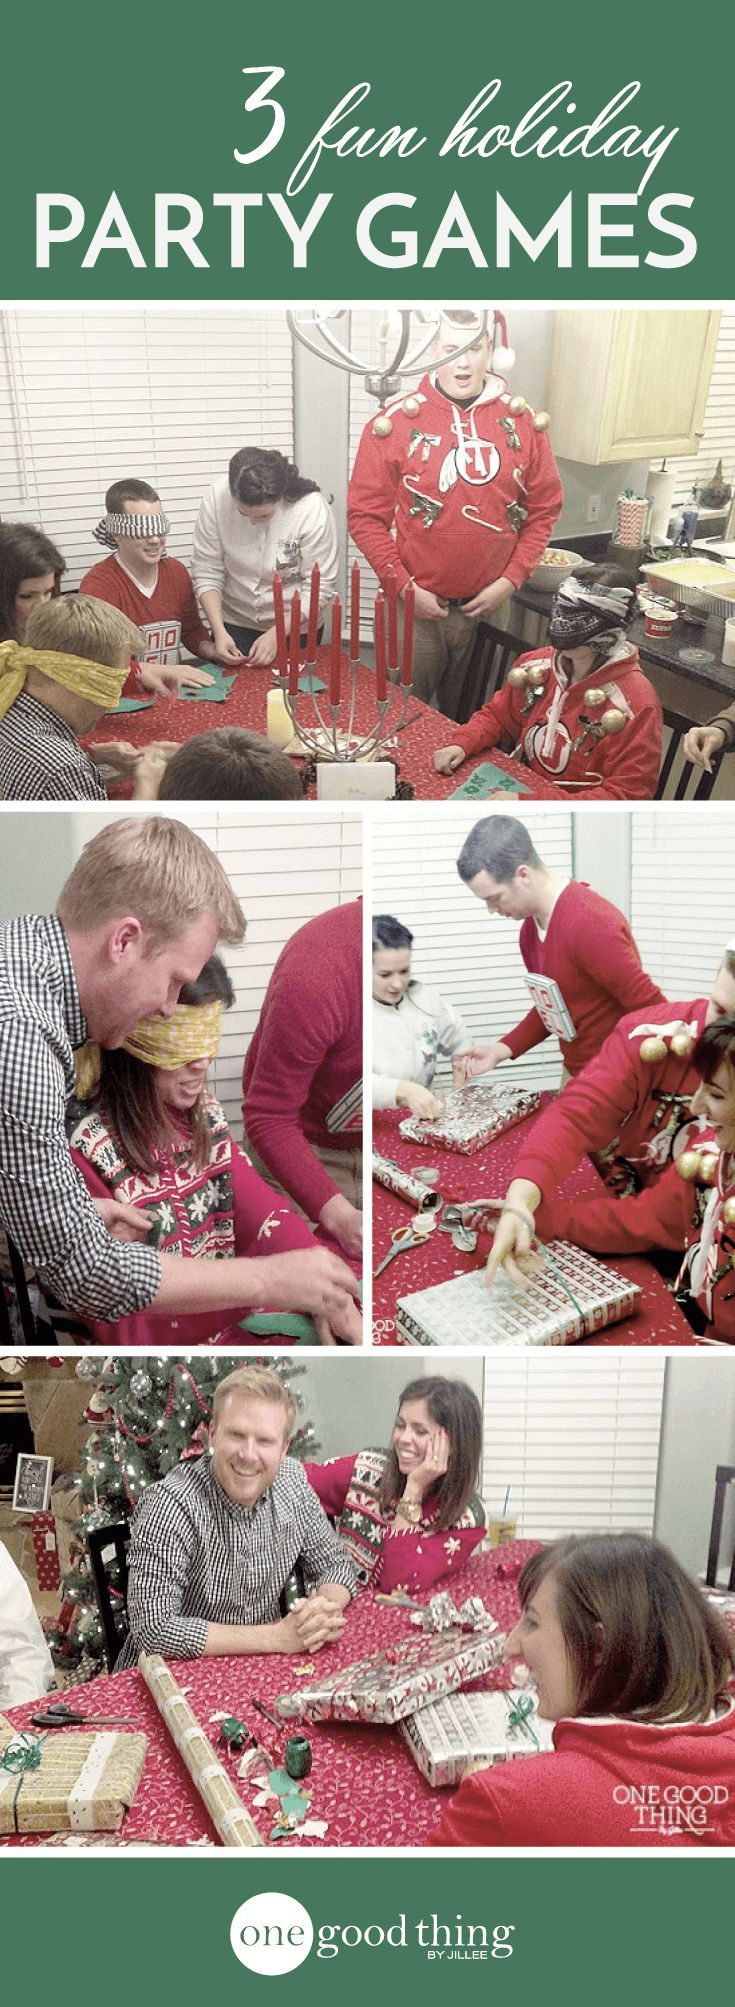 3 Fun Games To Liven Up Your Holiday Party